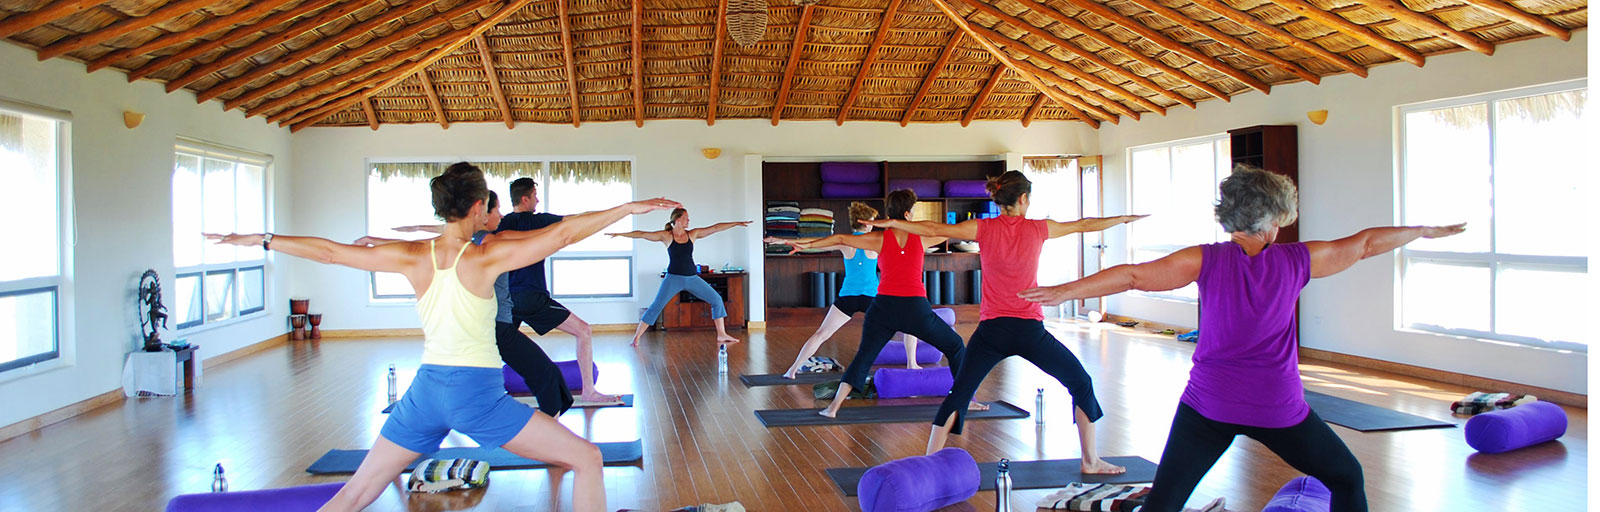 Yoga Retreat in Mexico: Group Yoga Class